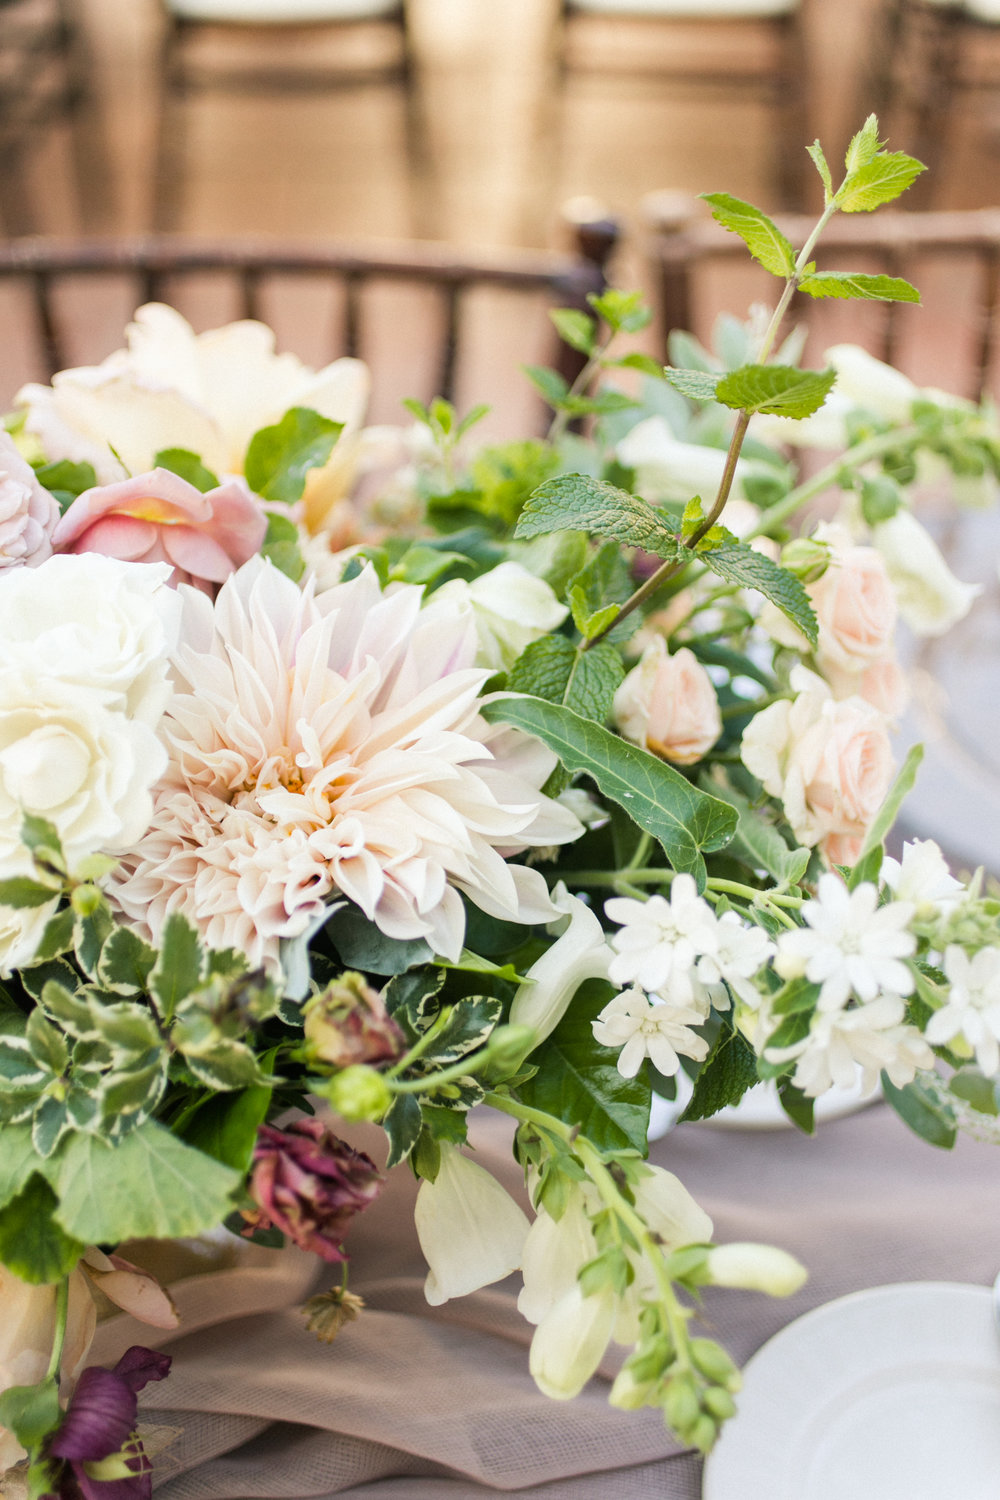 "Browse & Build to your Budget. - We have broken your wedding flowers down by category to make it easier to focus. At any time, you can click on your cart and see where you are at in terms of budget.The best part about this is that we are not restricting you to any style or color palette and this is where the trust in our skill comes in. You will be asked to describe your color palette with each item (where necessary) and explain your style. Every, single, wedding, and client is unique. We want you to tell us what YOU want!It's your day, you decide, we design!For example: When ordering your Bridal Bouquet, (EXPLAIN MORE)Our design product descriptions are meant to make you feel like you're having a conversation with us about flowers in the comfort of your own environment, at any time, anywhere. We explain what each design entails and but allow you to tell us your color palette and style.We also have ""Styling Suggestions"" for items that can serve multiple purposes. After hundreds of weddings we have seen it all and want you to get the most out of your flowers.Still Not sure? May we suggest looking at our portfolio from past clients to give you a feel for the magic we are creating through flowers. Trust us!It's effortless, elegant and simple, just like our flowers.*****Yeah, it's that easy. You can take as much time as you need to browse our store- book when you are ready and check out this awesome"